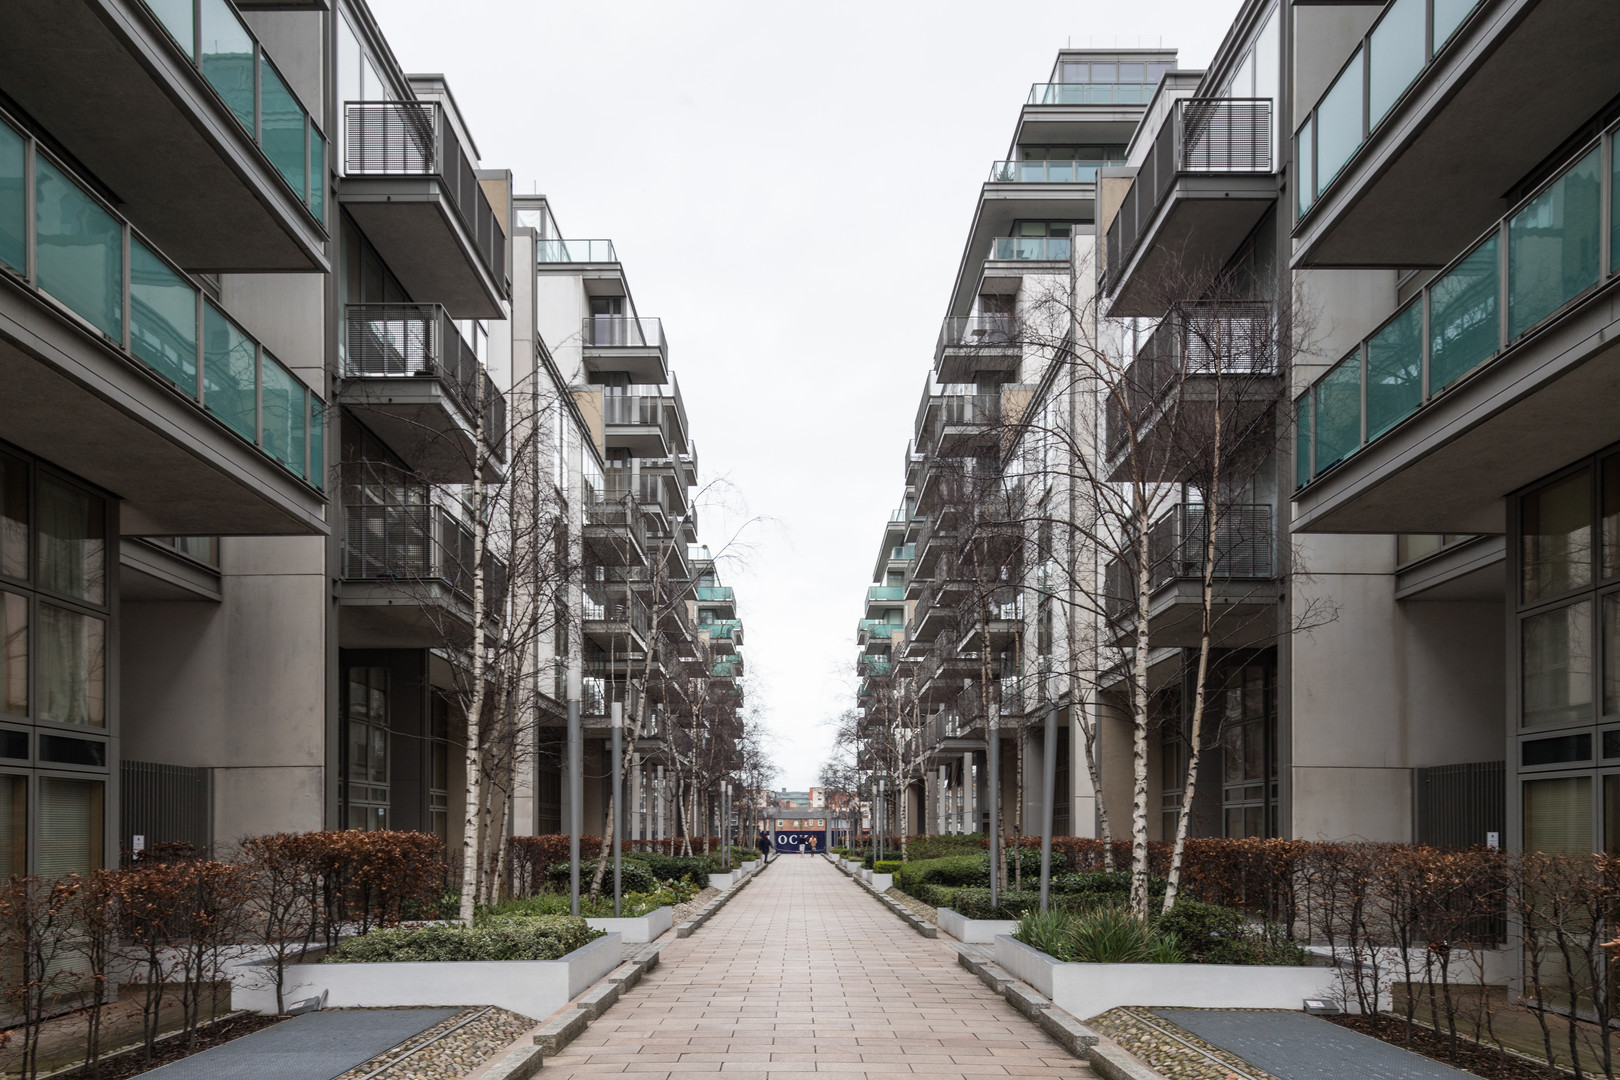 External view of the Spencer Dock Apartments in Dublin from internal street